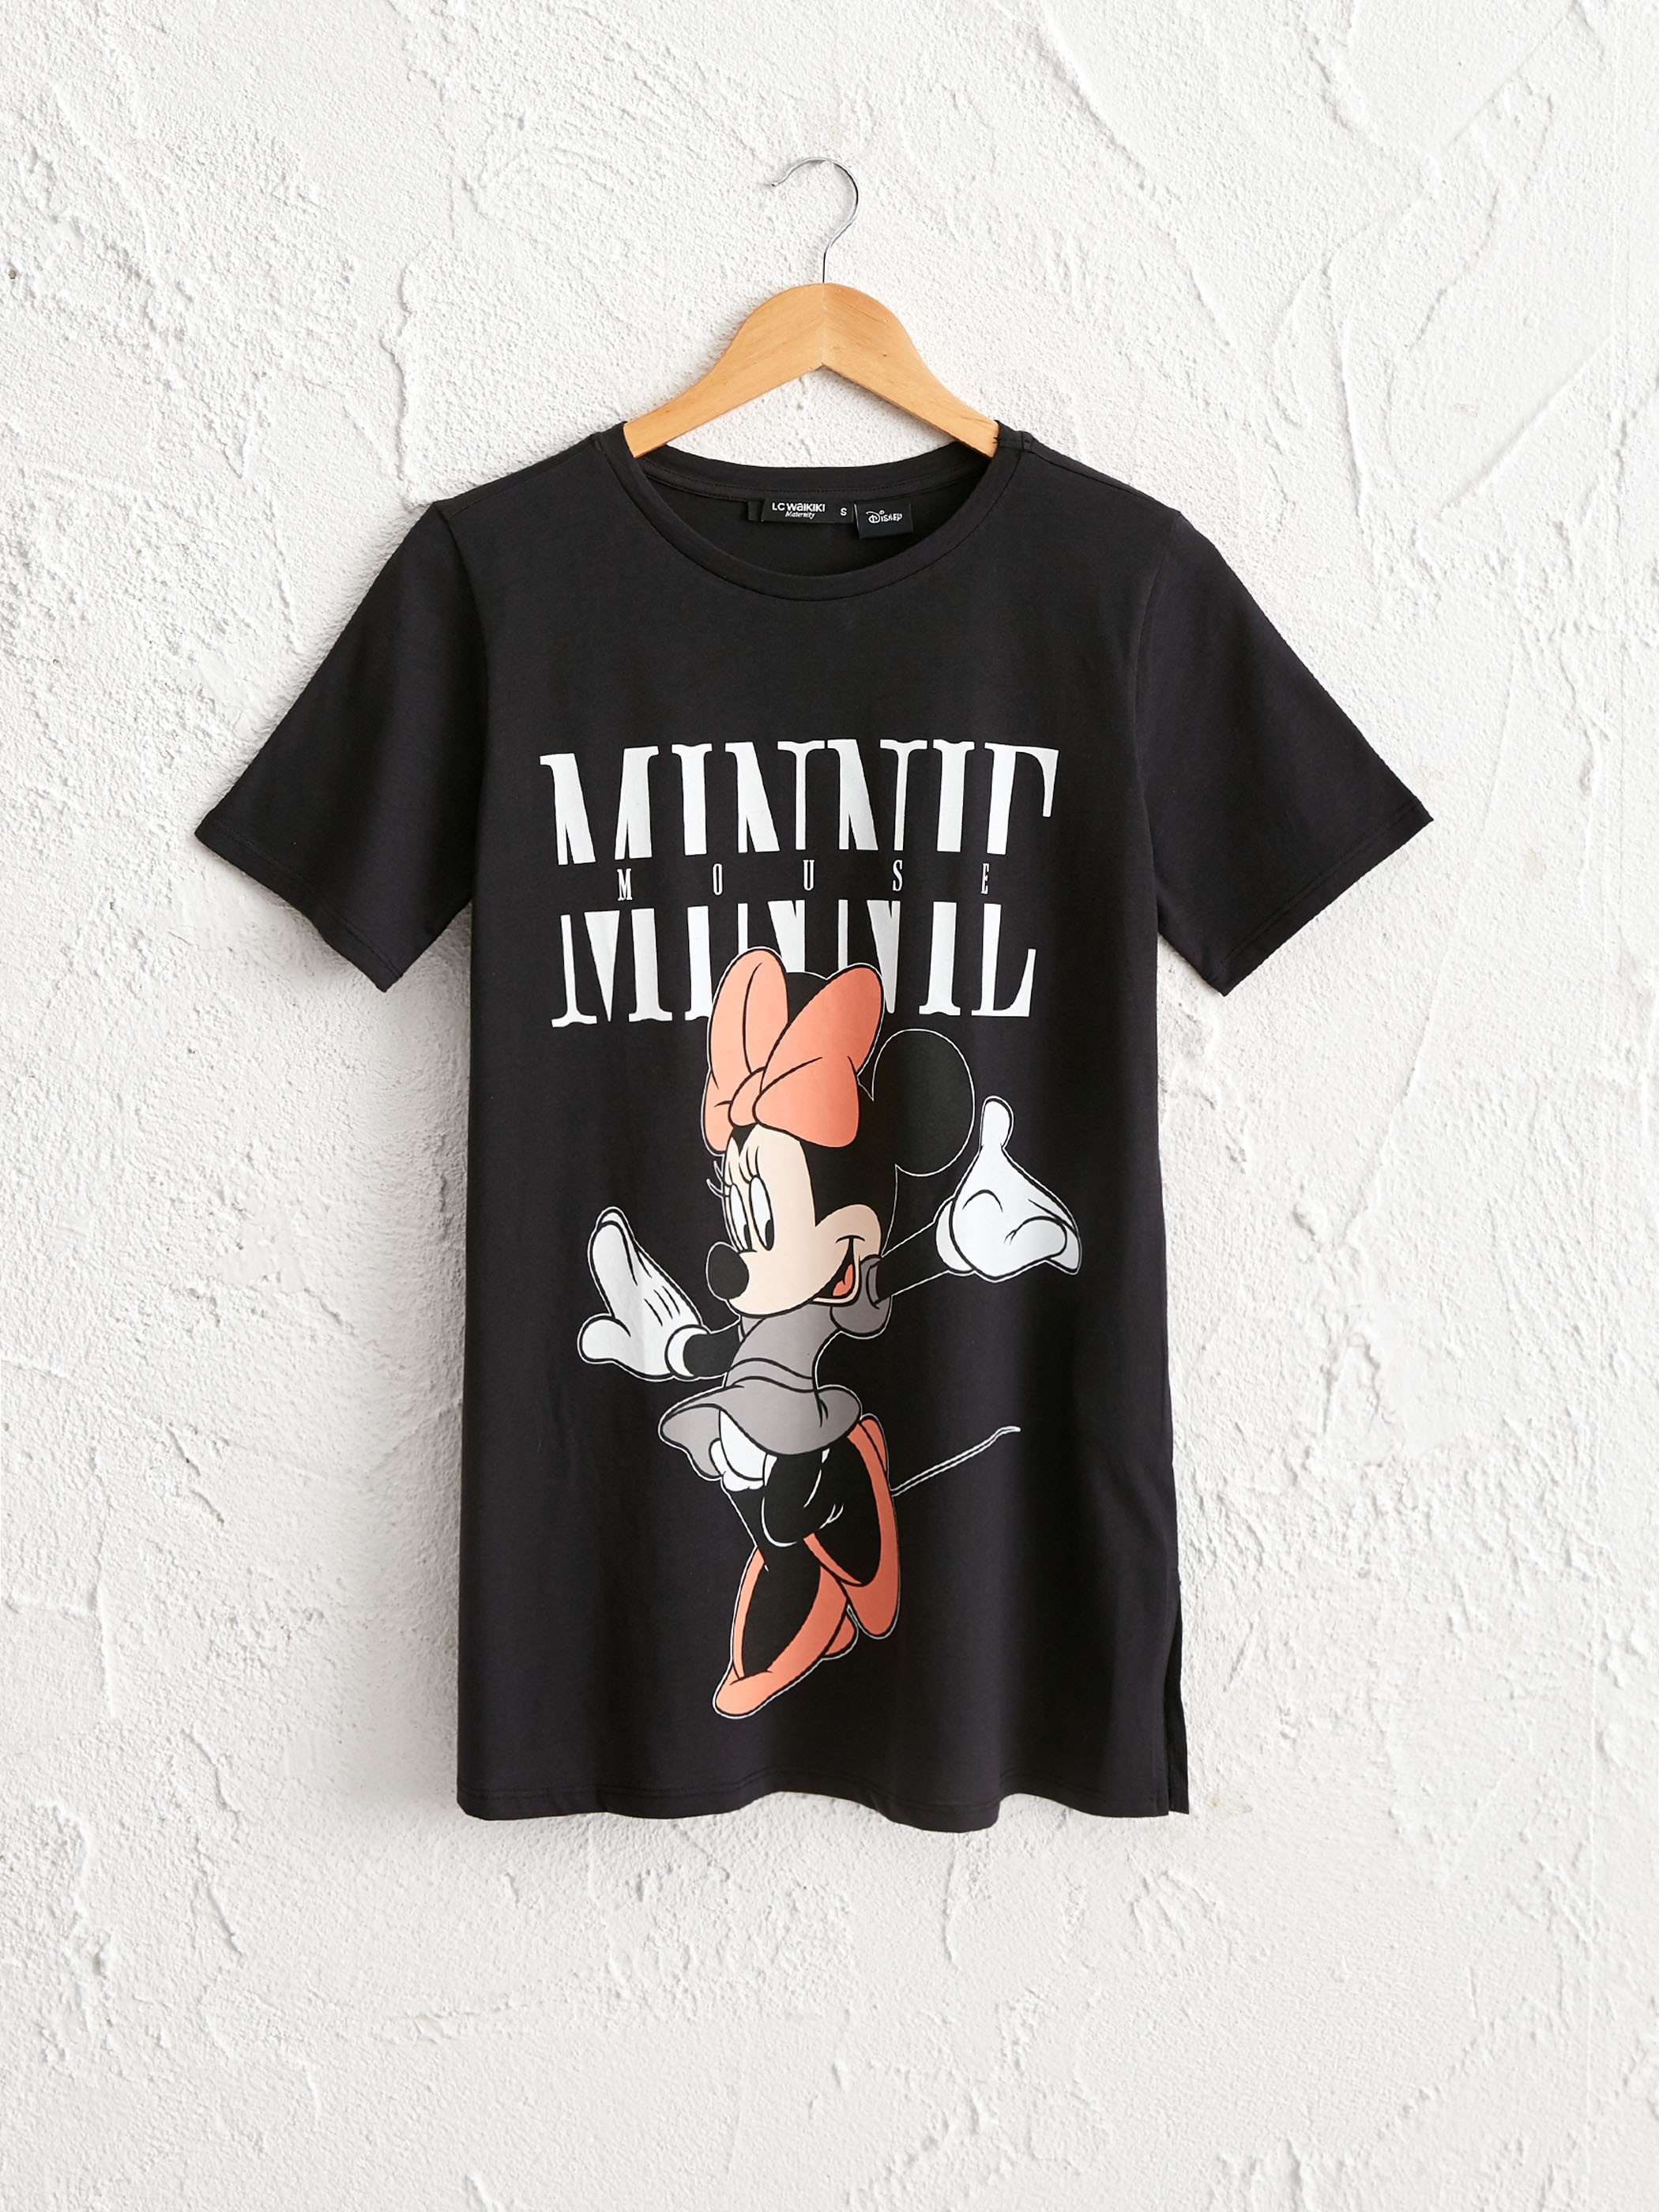 ANTHRACITE - Minnie Mouse Printed Cotton Maternity T-Shirt - 0WCK03Z8